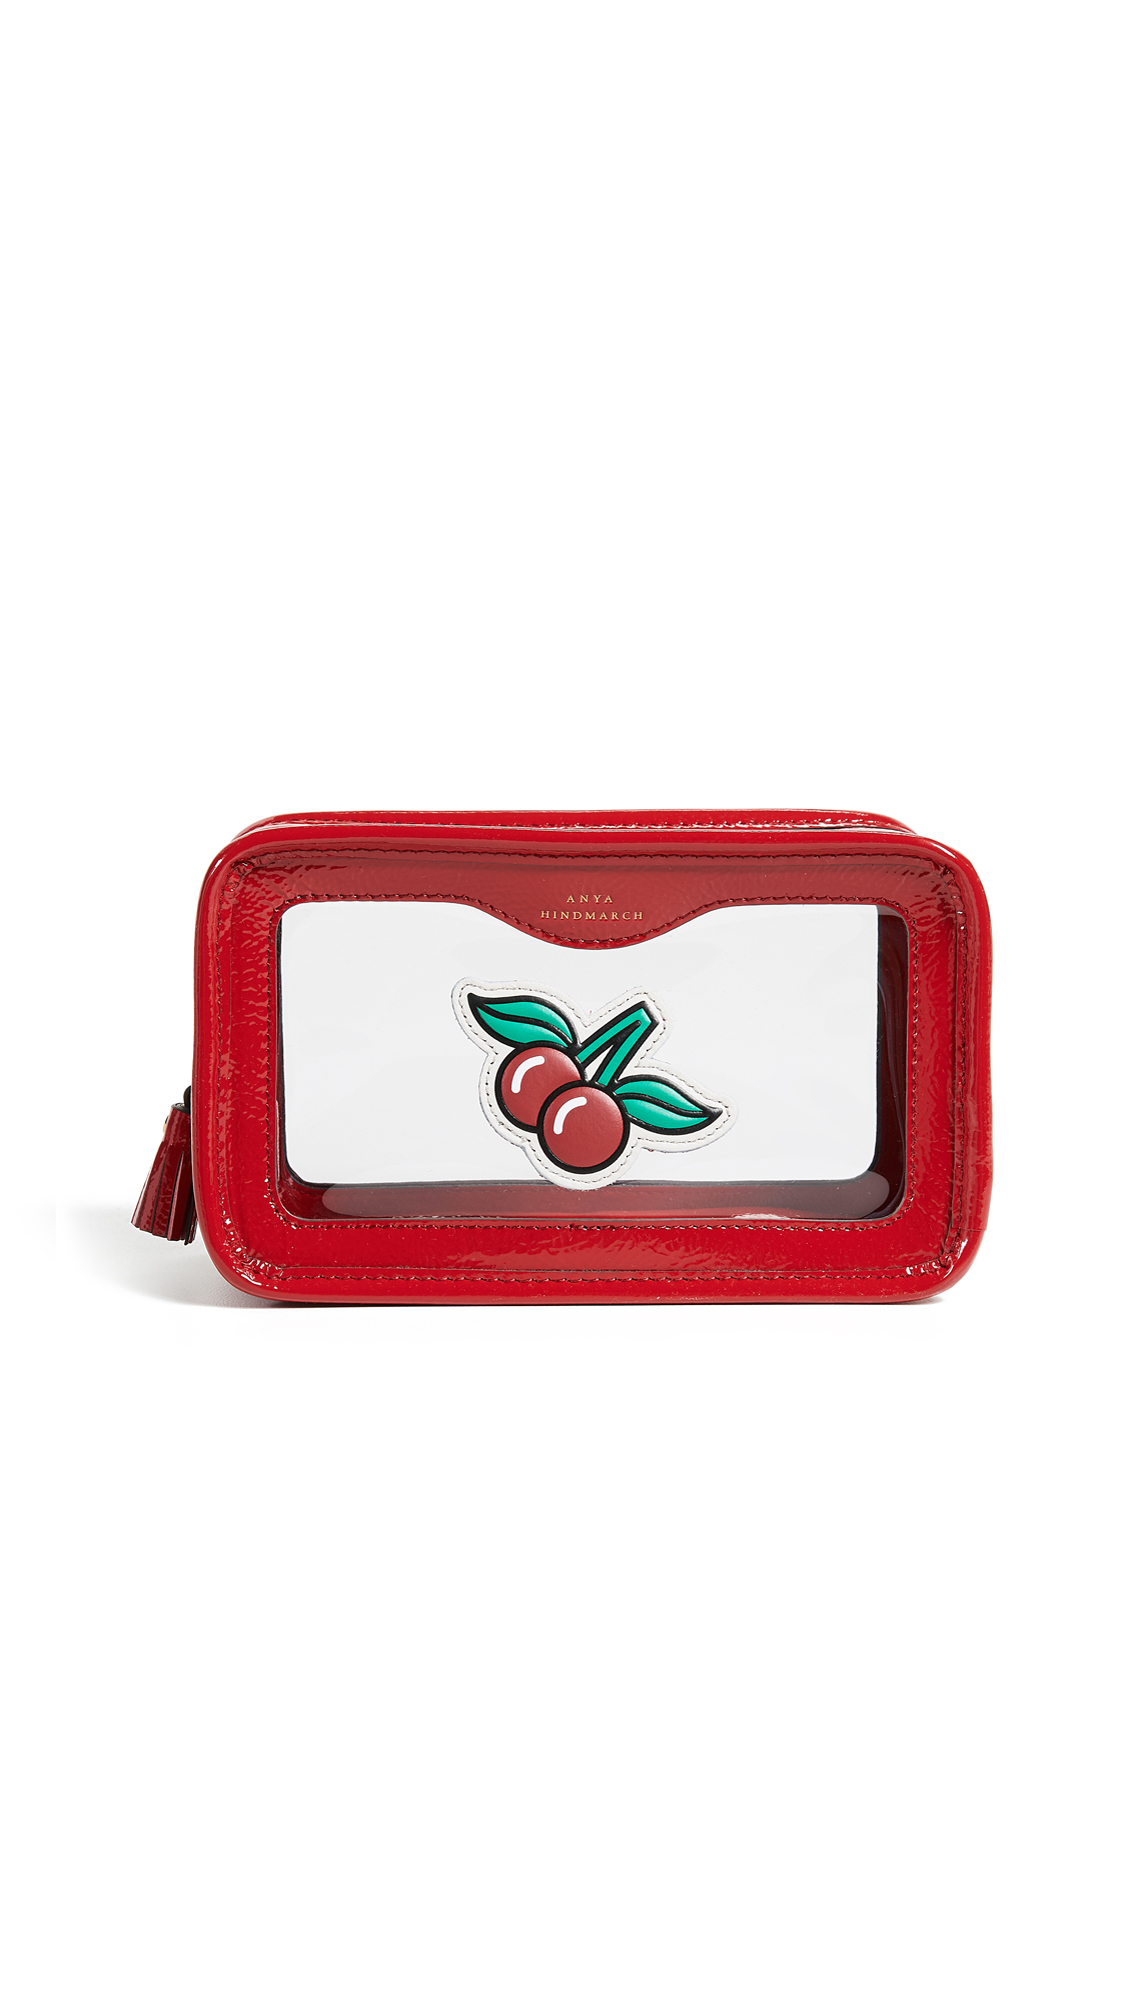 ANYA HINDMARCH RAINY DAY POUCH